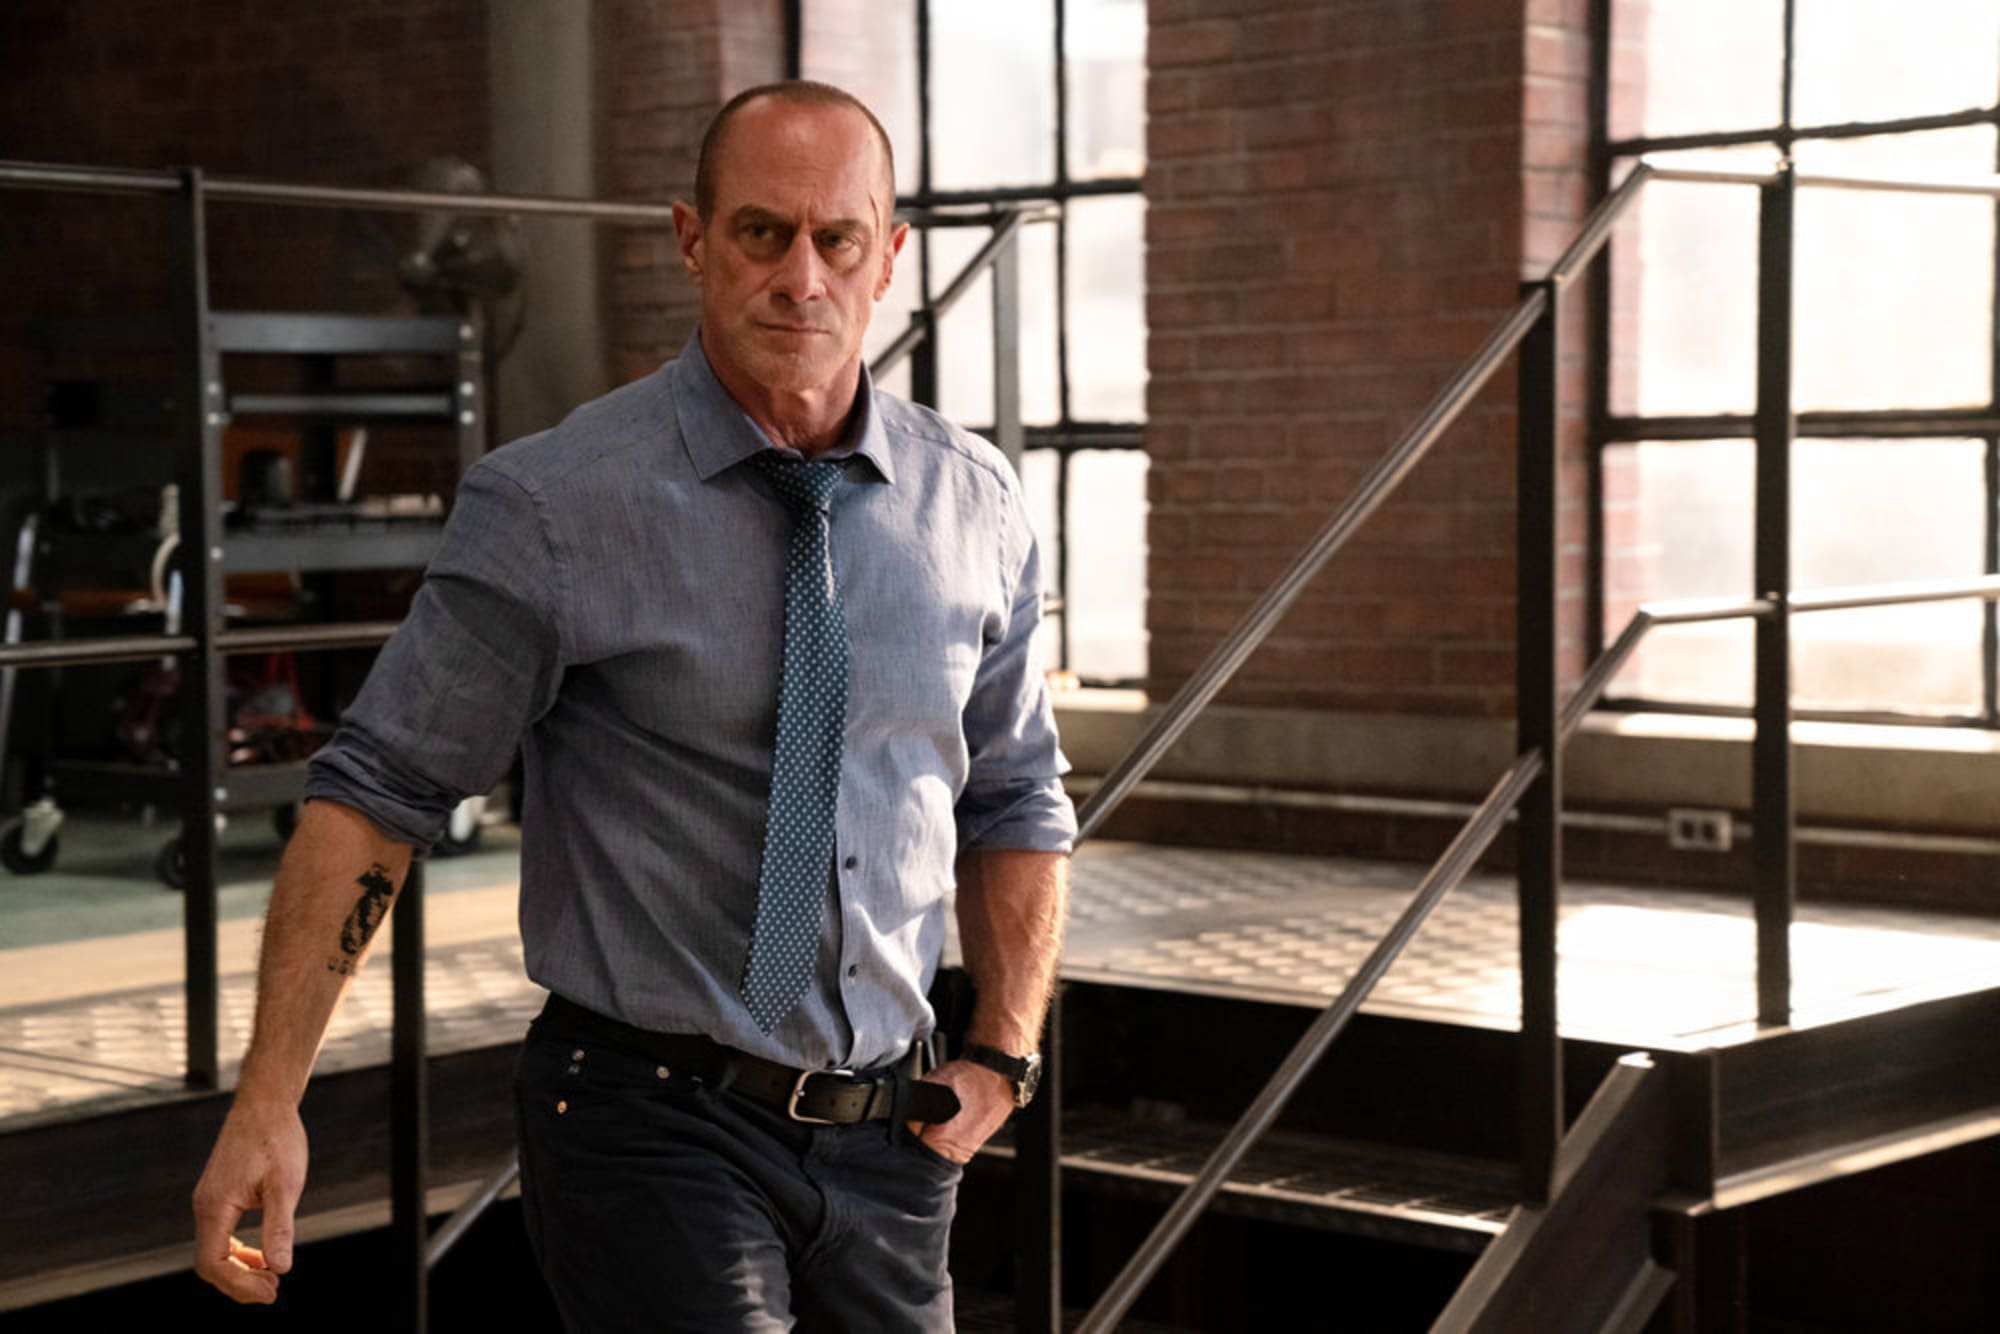 Elliot stabler happened to what Law &